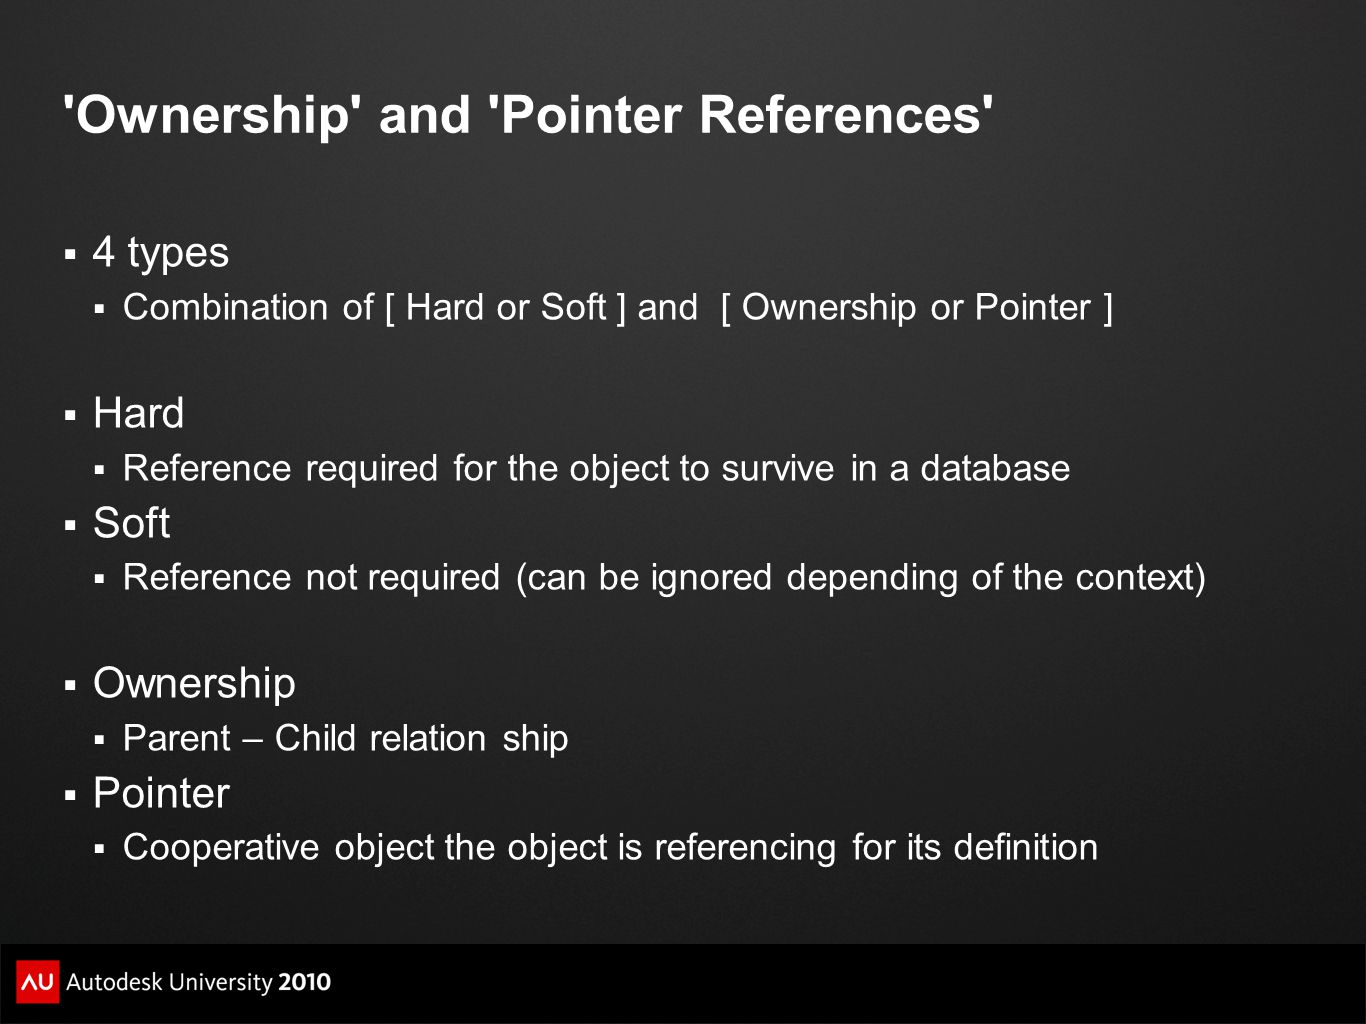 Ownership and Pointer References